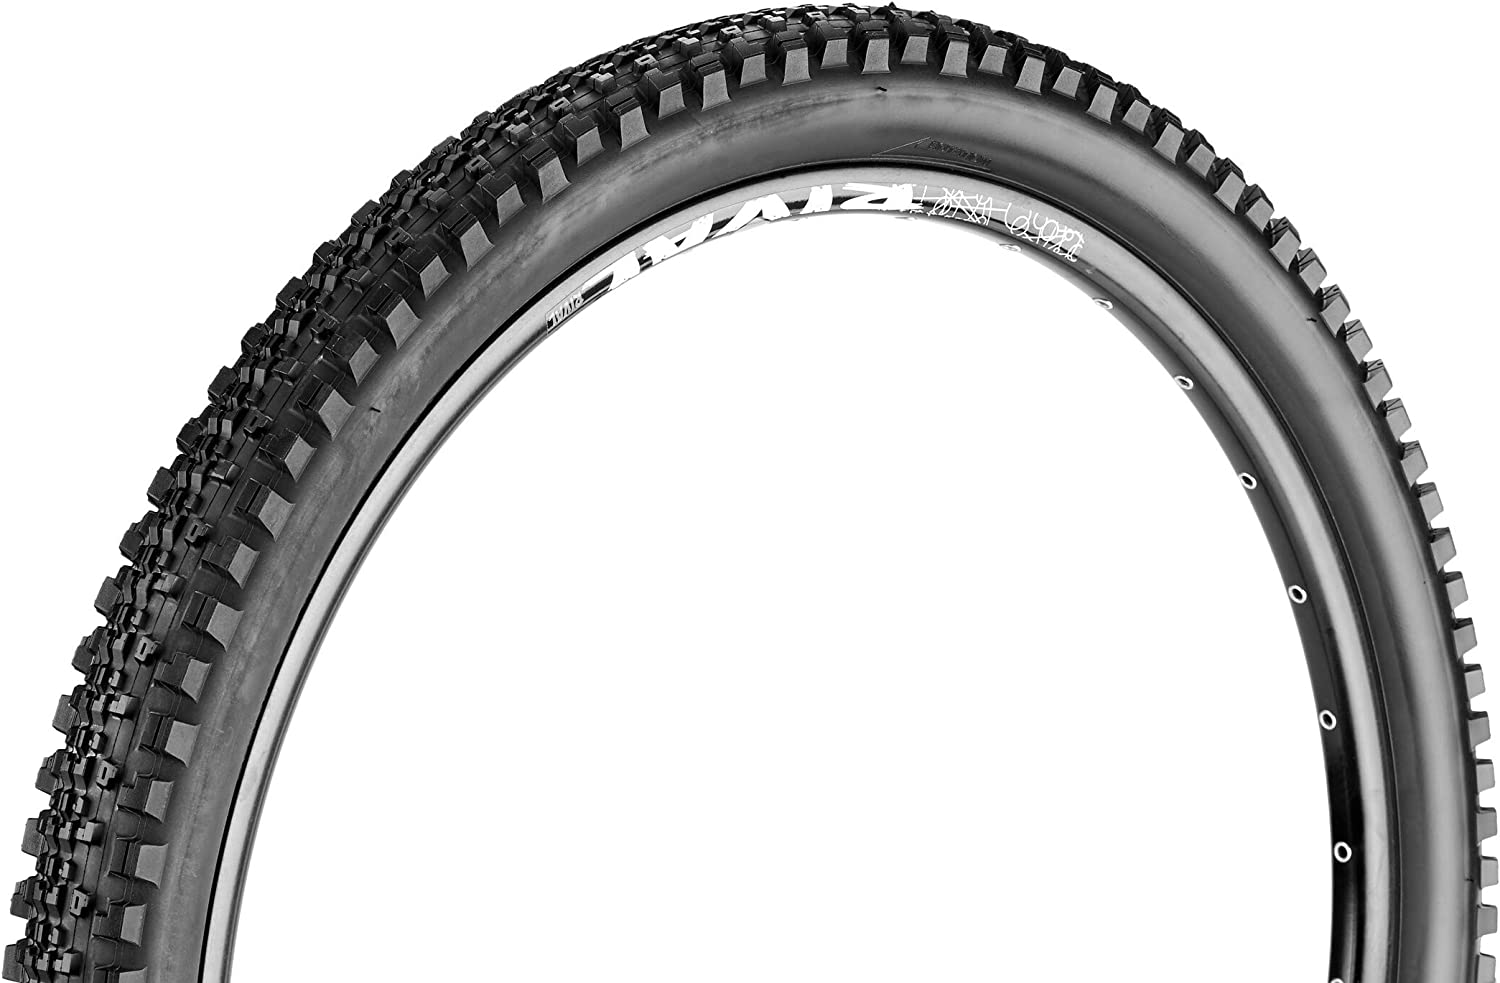 Maxxis Minion SS 26 x 2.3 EXO//TR Tubeless Ready Mountain Bike Tire Pair